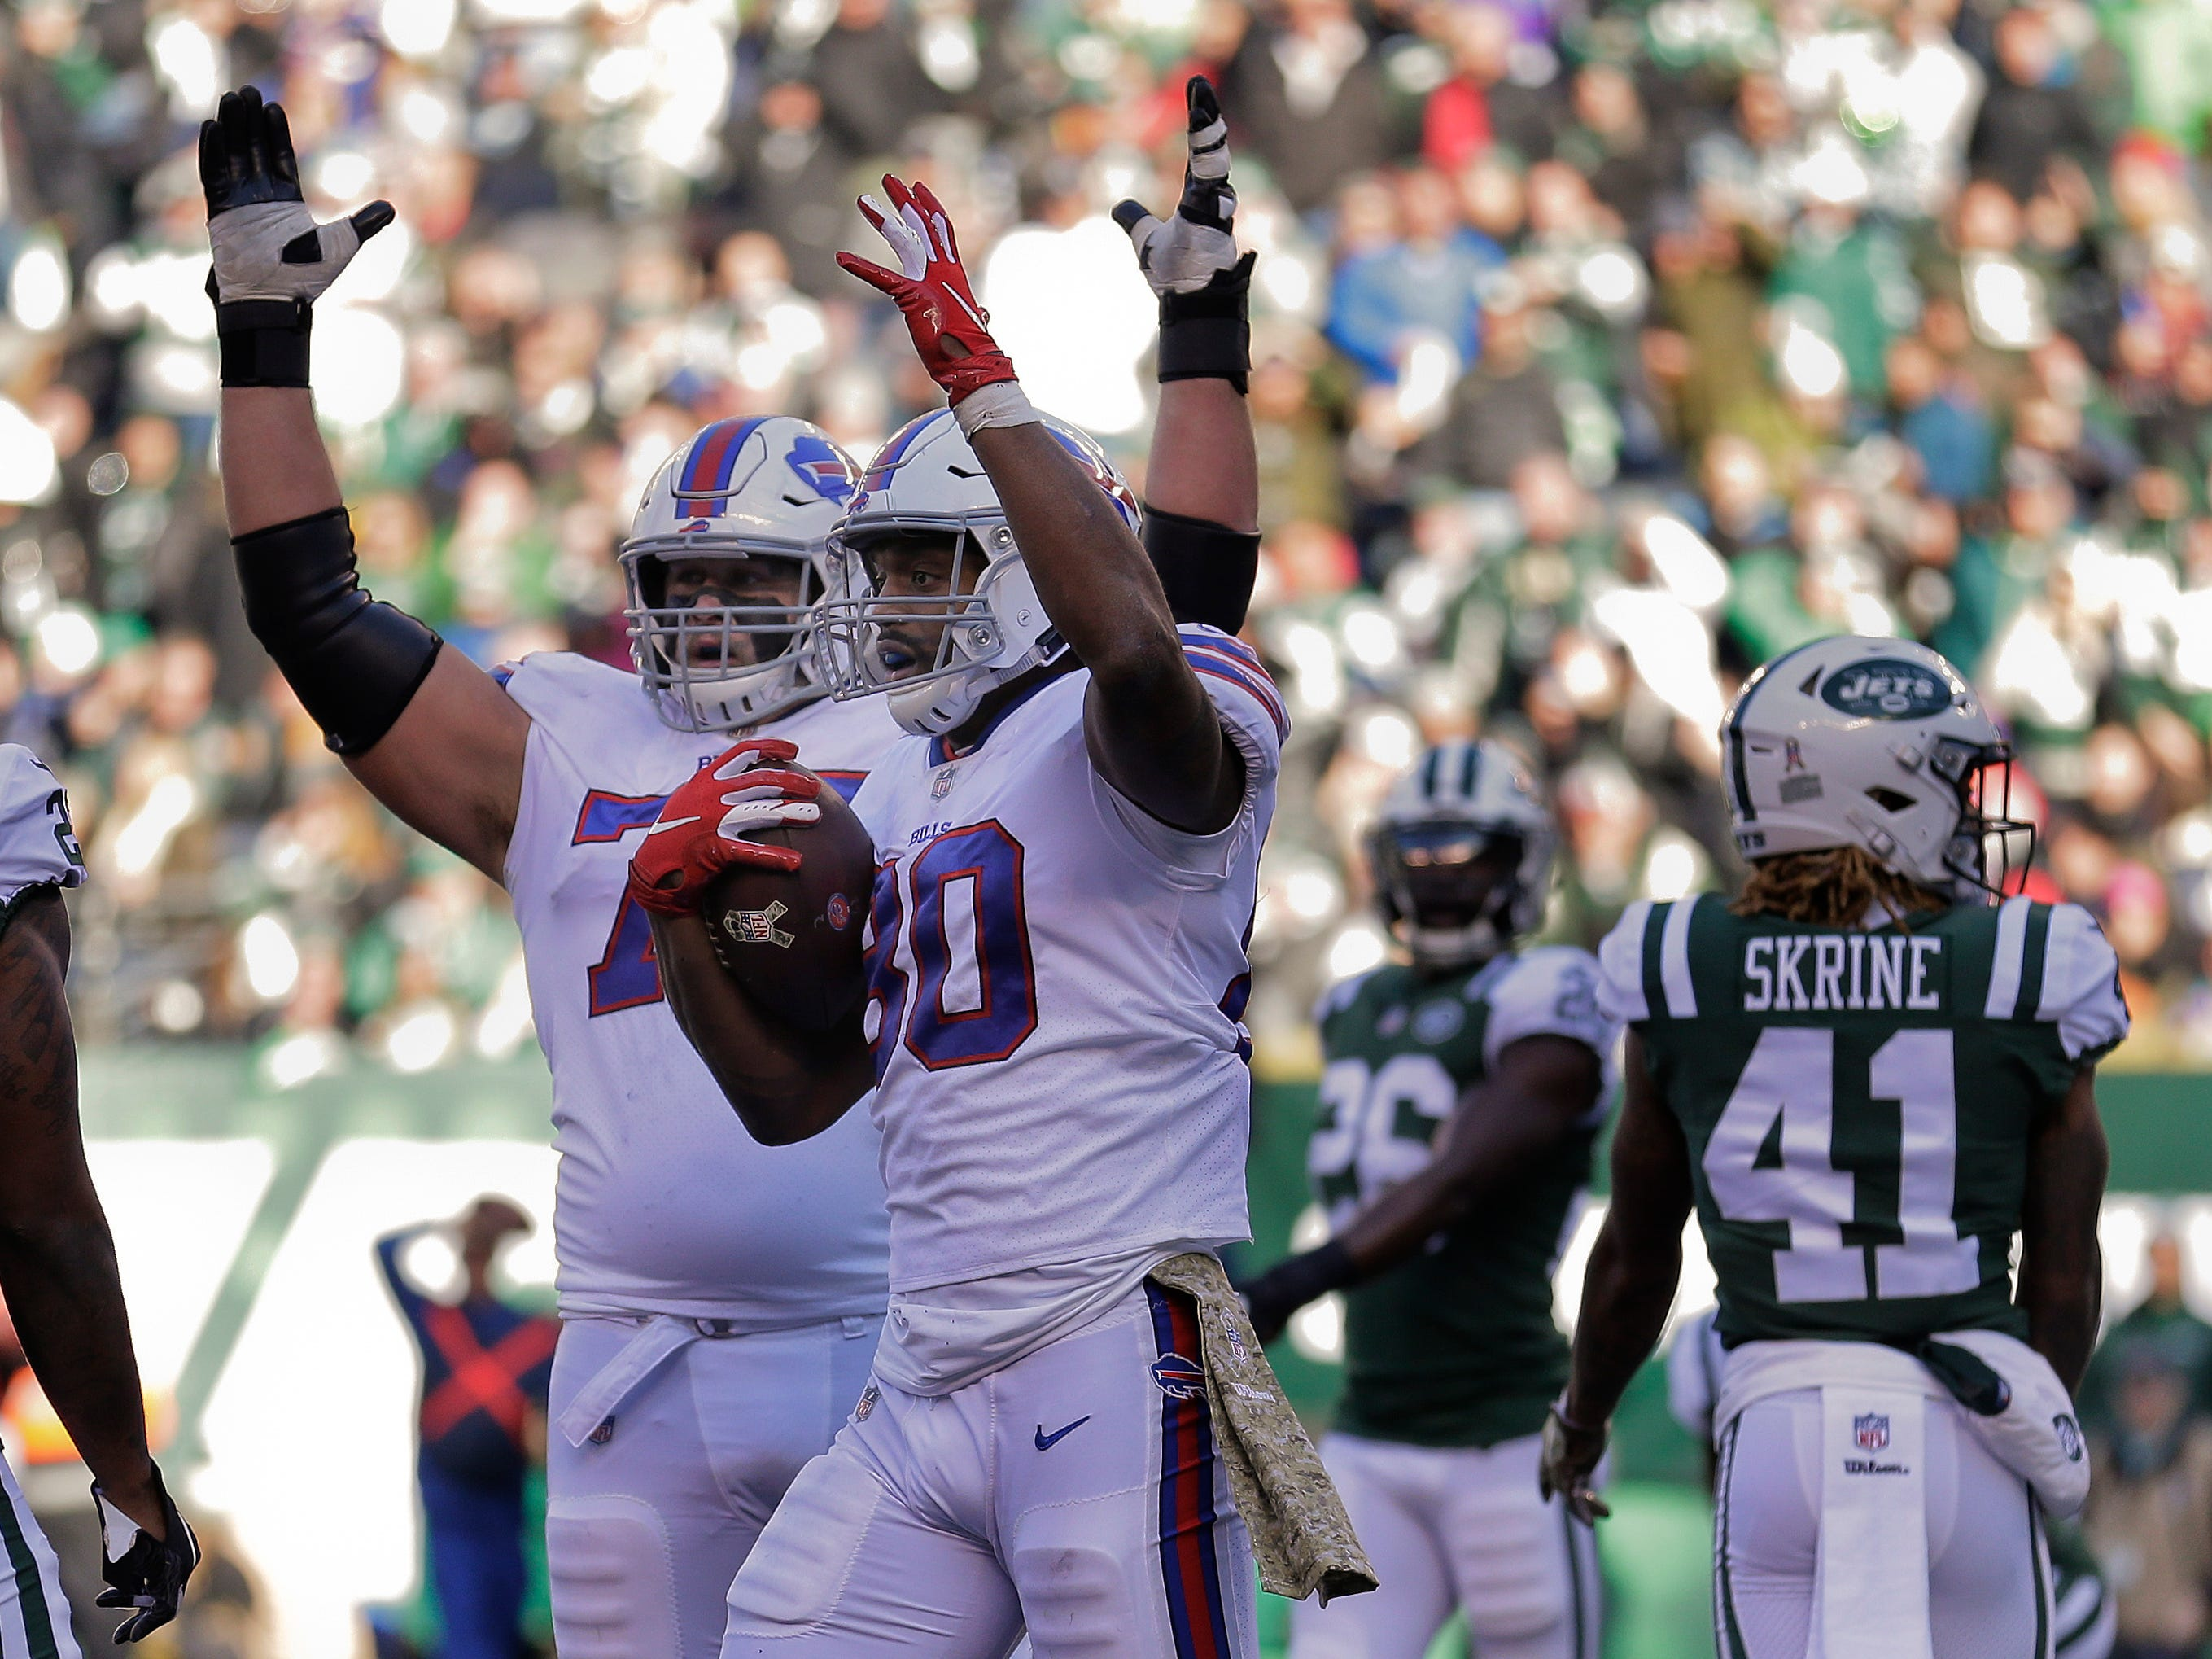 Buffalo Bills tight end Jason Croom (80) and offensive guard Wyatt Teller (75) motion for a touchdown after Croom recovered a fumble in the end zone against the New York Jets during the first quarter of an NFL football game, Sunday, Nov. 11, 2018, in East Rutherford, N.J. (AP Photo/Seth Wenig)